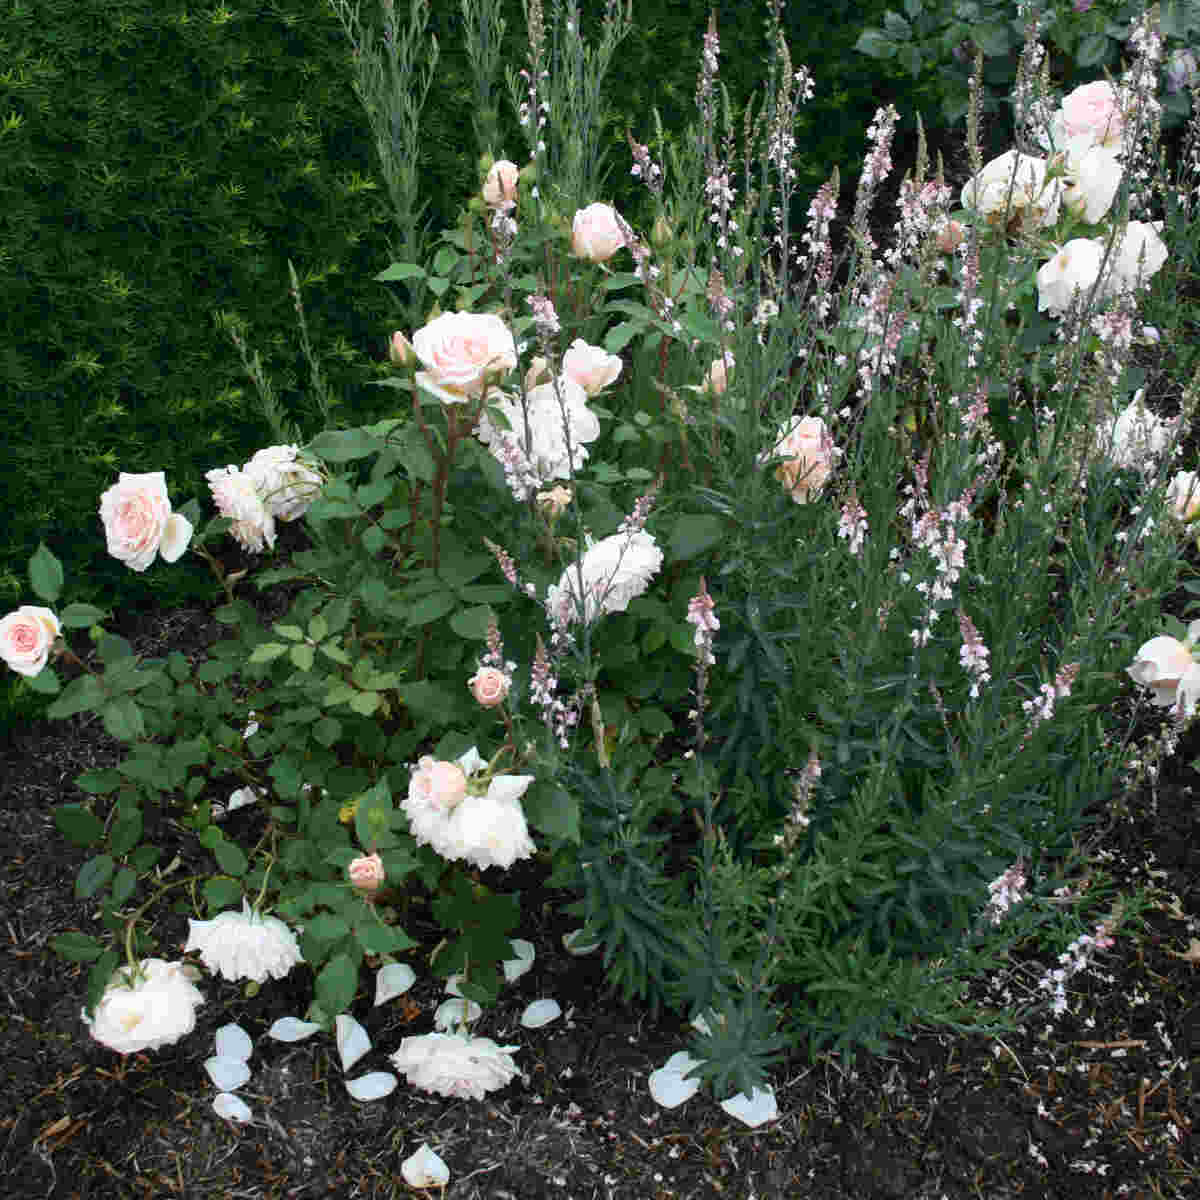 Claire de lune blomster i Laubjergs Rosenhave